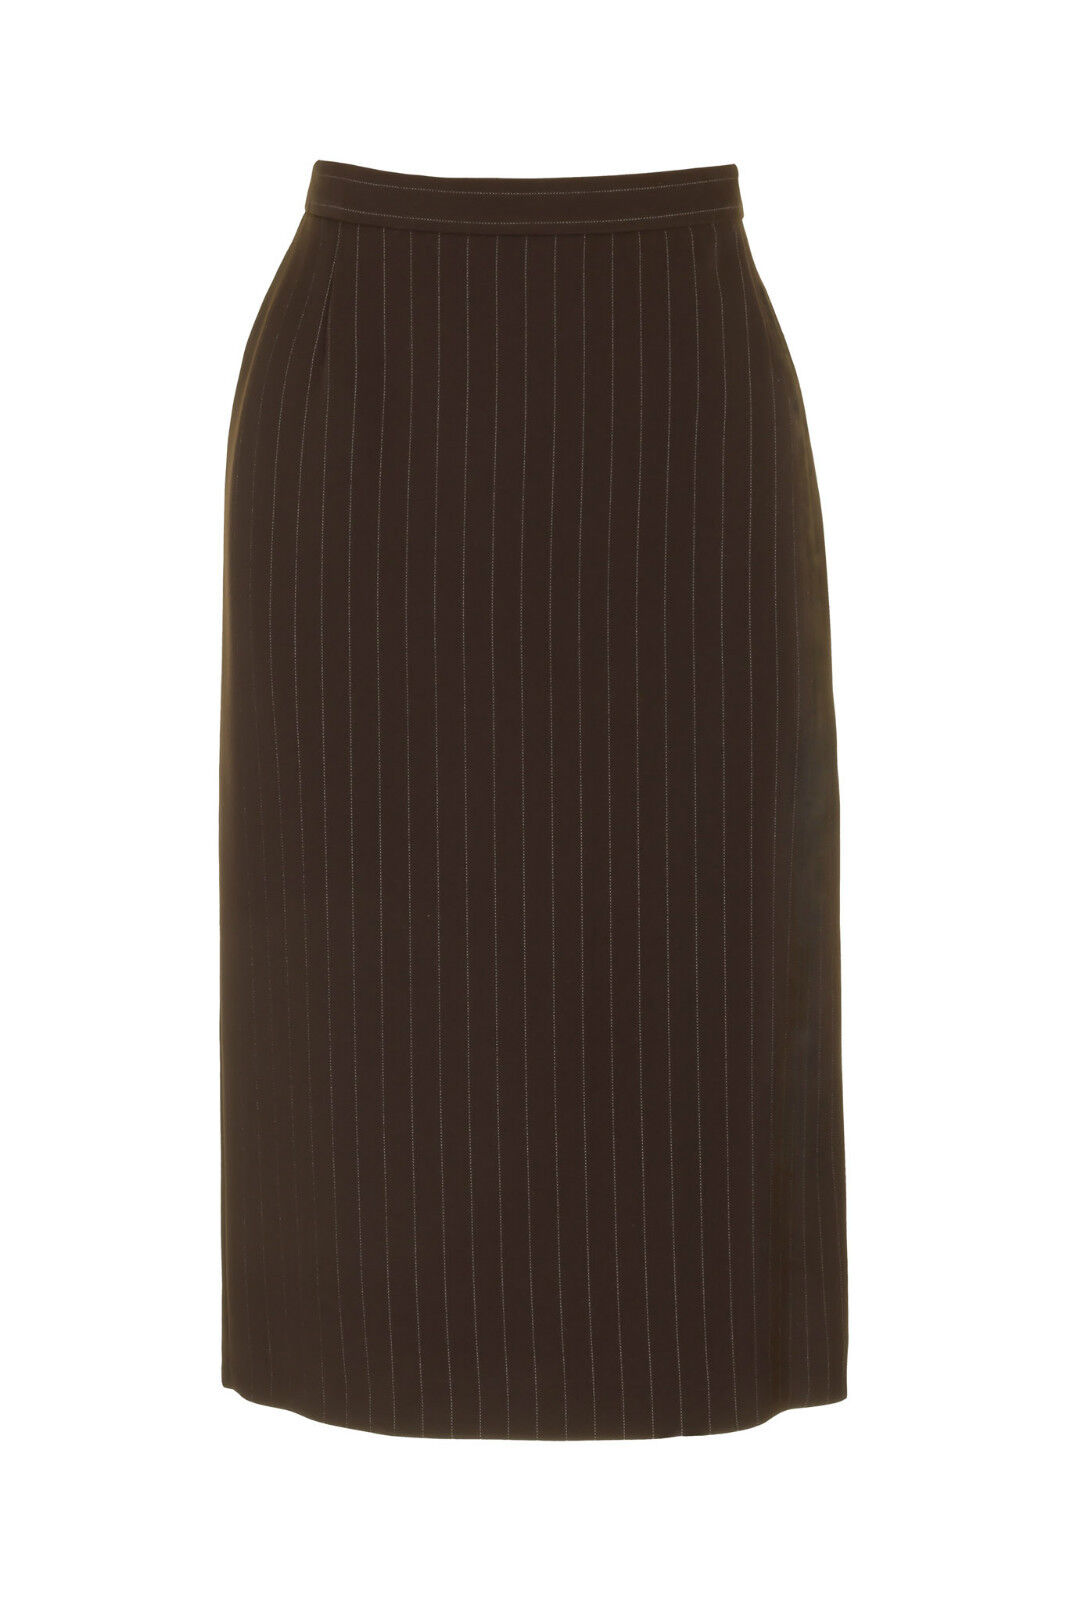 Busy Womens Brown Pinstripe Pencil Skirt